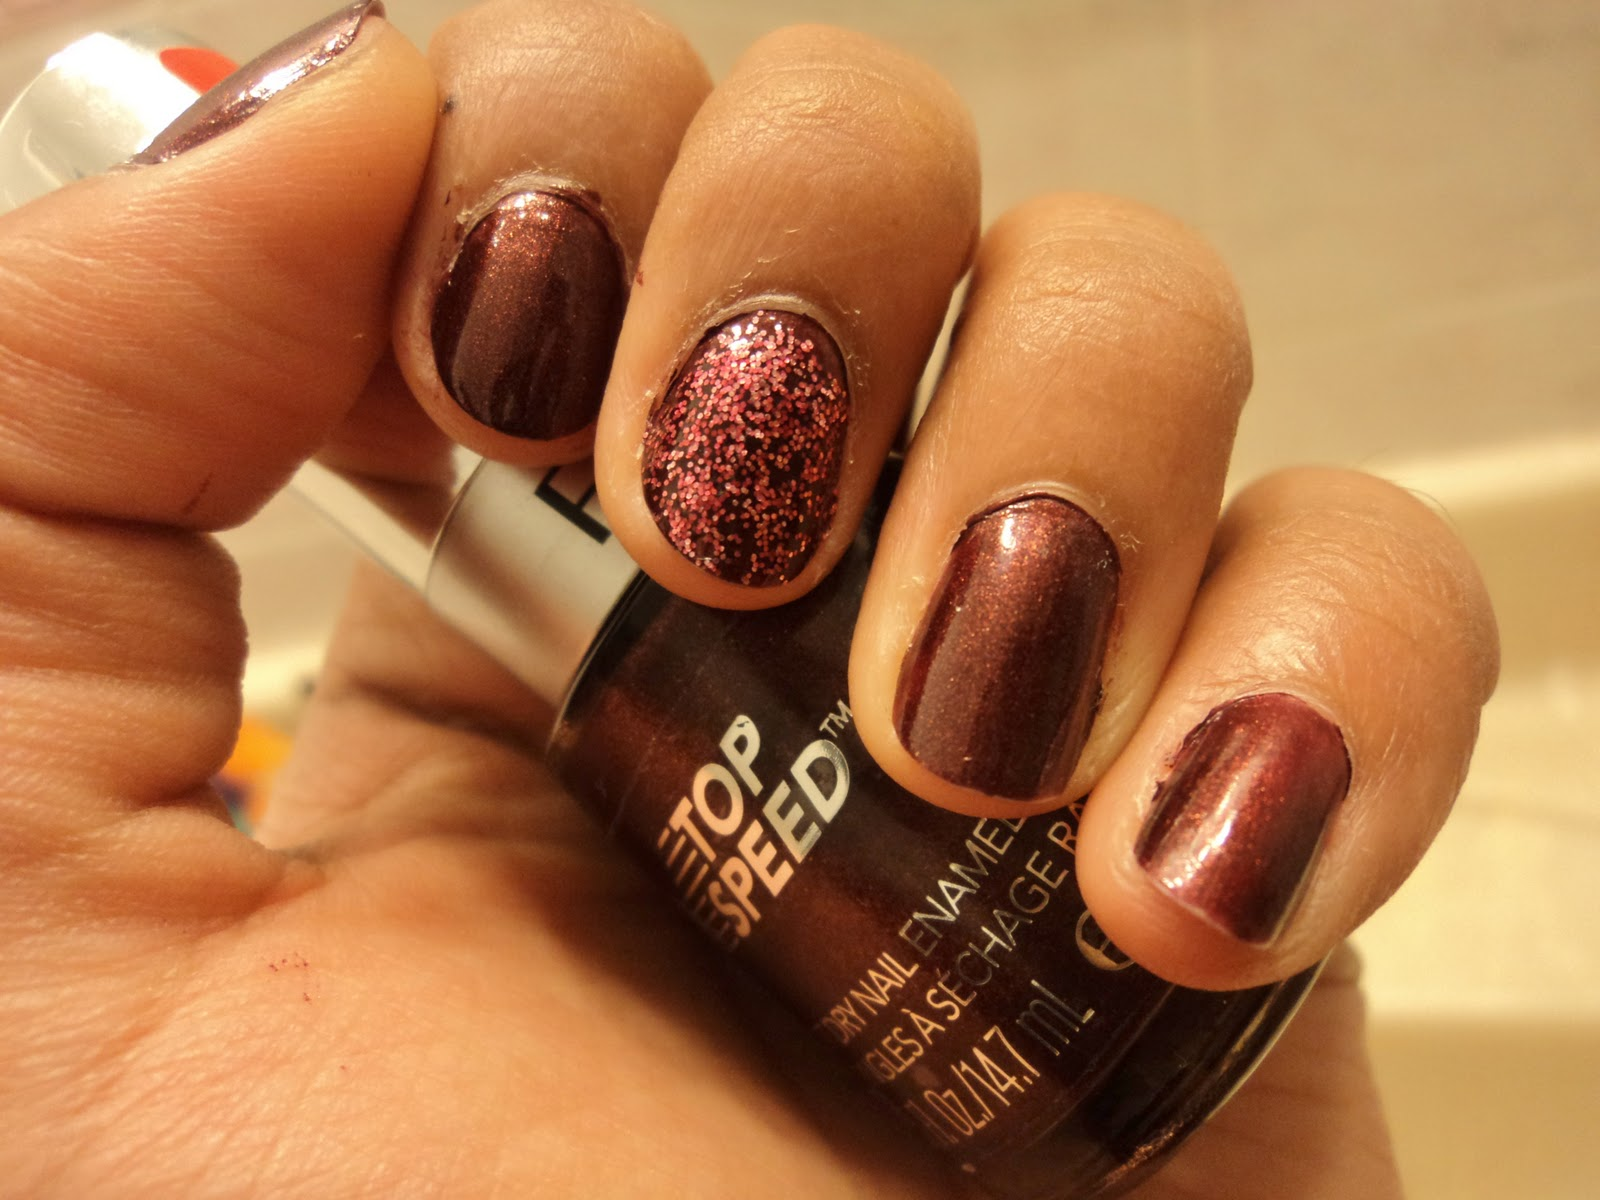 E It Up Is A Cranberry Burgundy Red Which Great Holiday Colour Has Gold Shimmer In That Catches The Light Beautifully